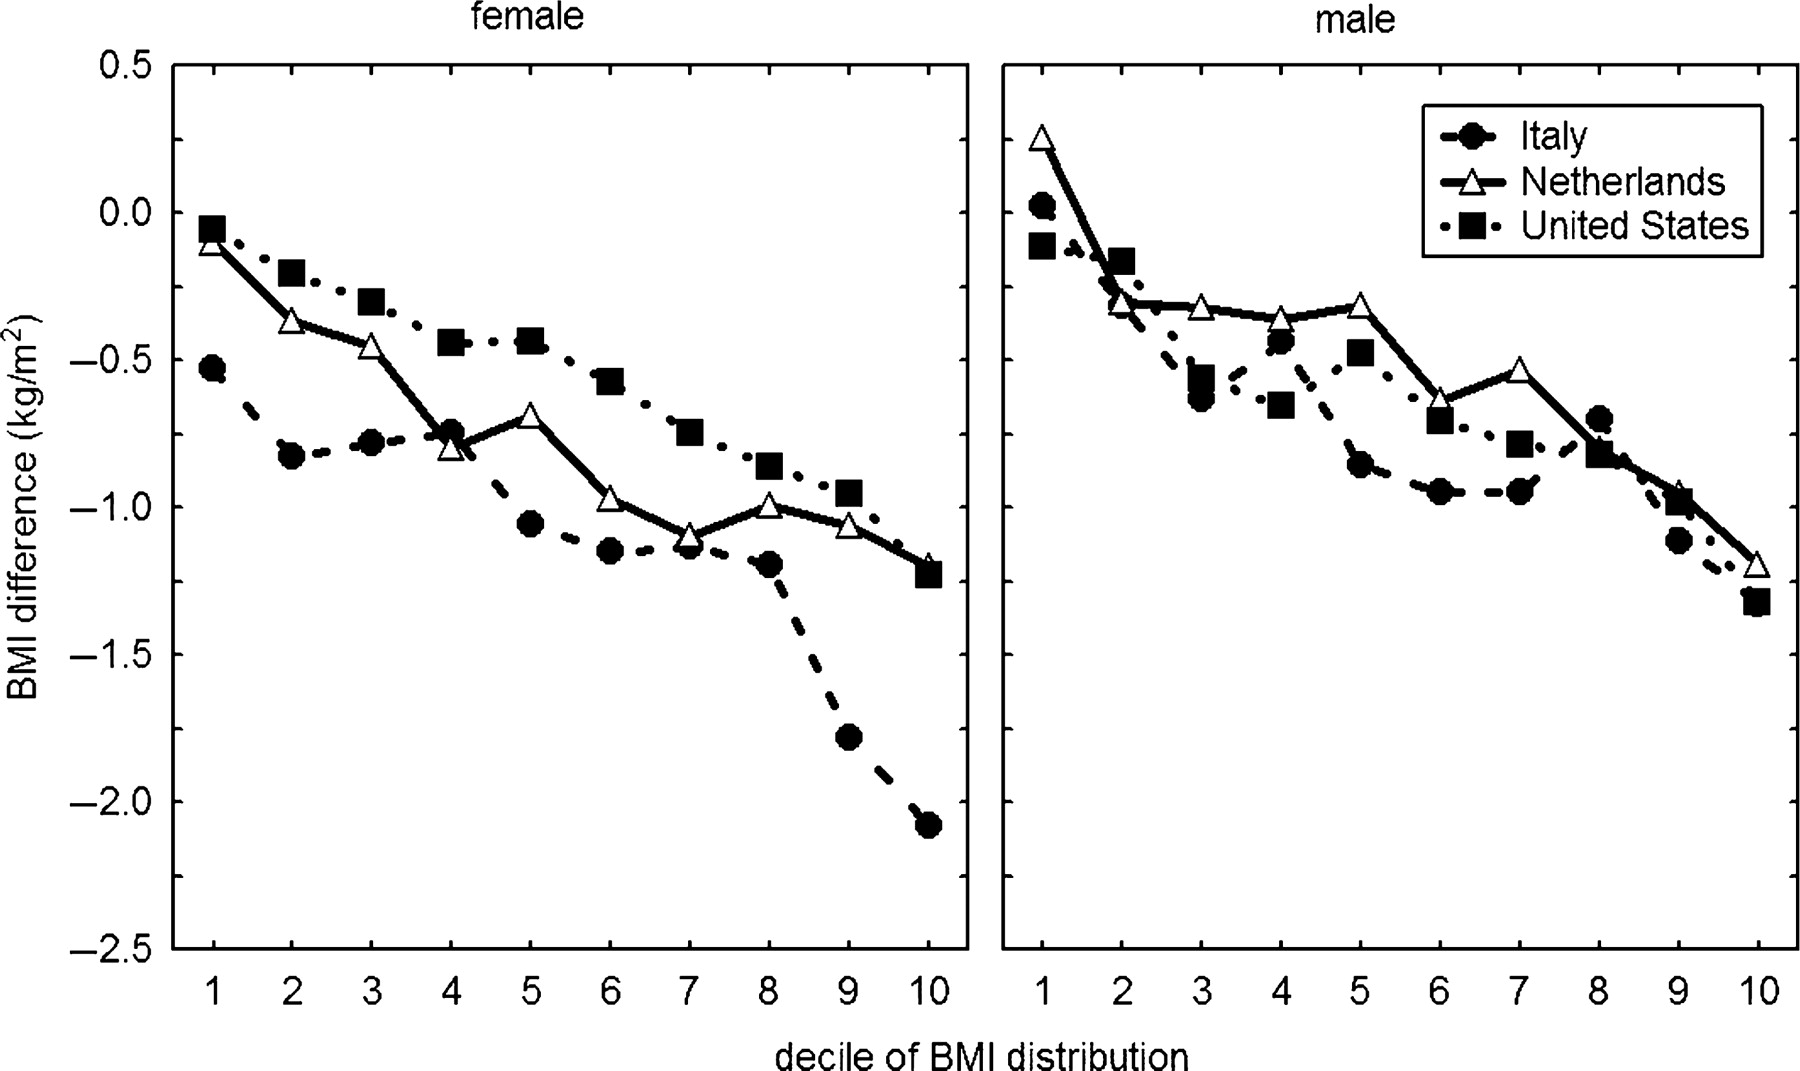 Self Reported And Measured Weight Height And Body Mass Index Bmi